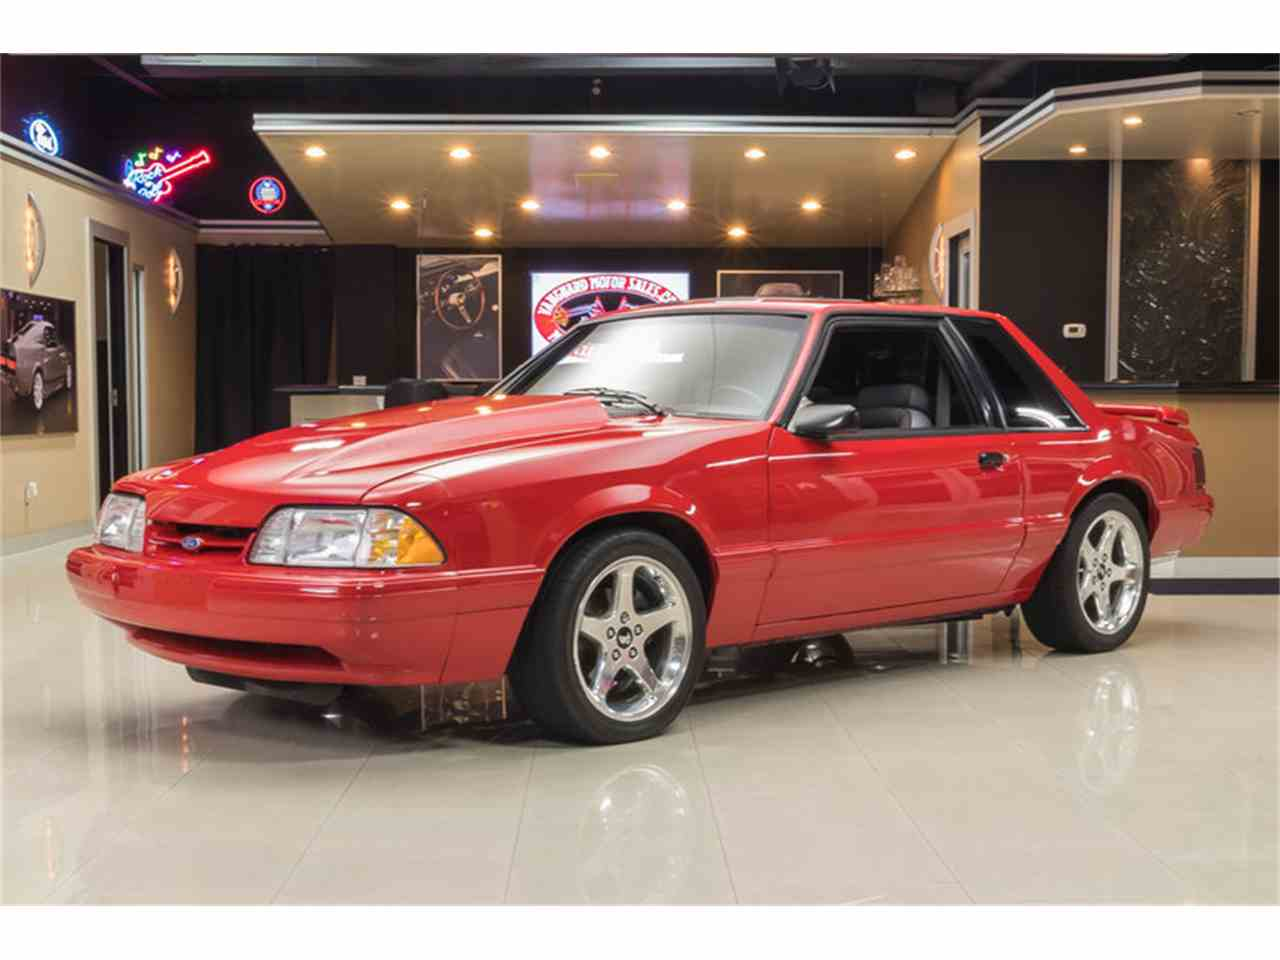 1993 ford mustang lx notchback for sale cc 1031903. Black Bedroom Furniture Sets. Home Design Ideas